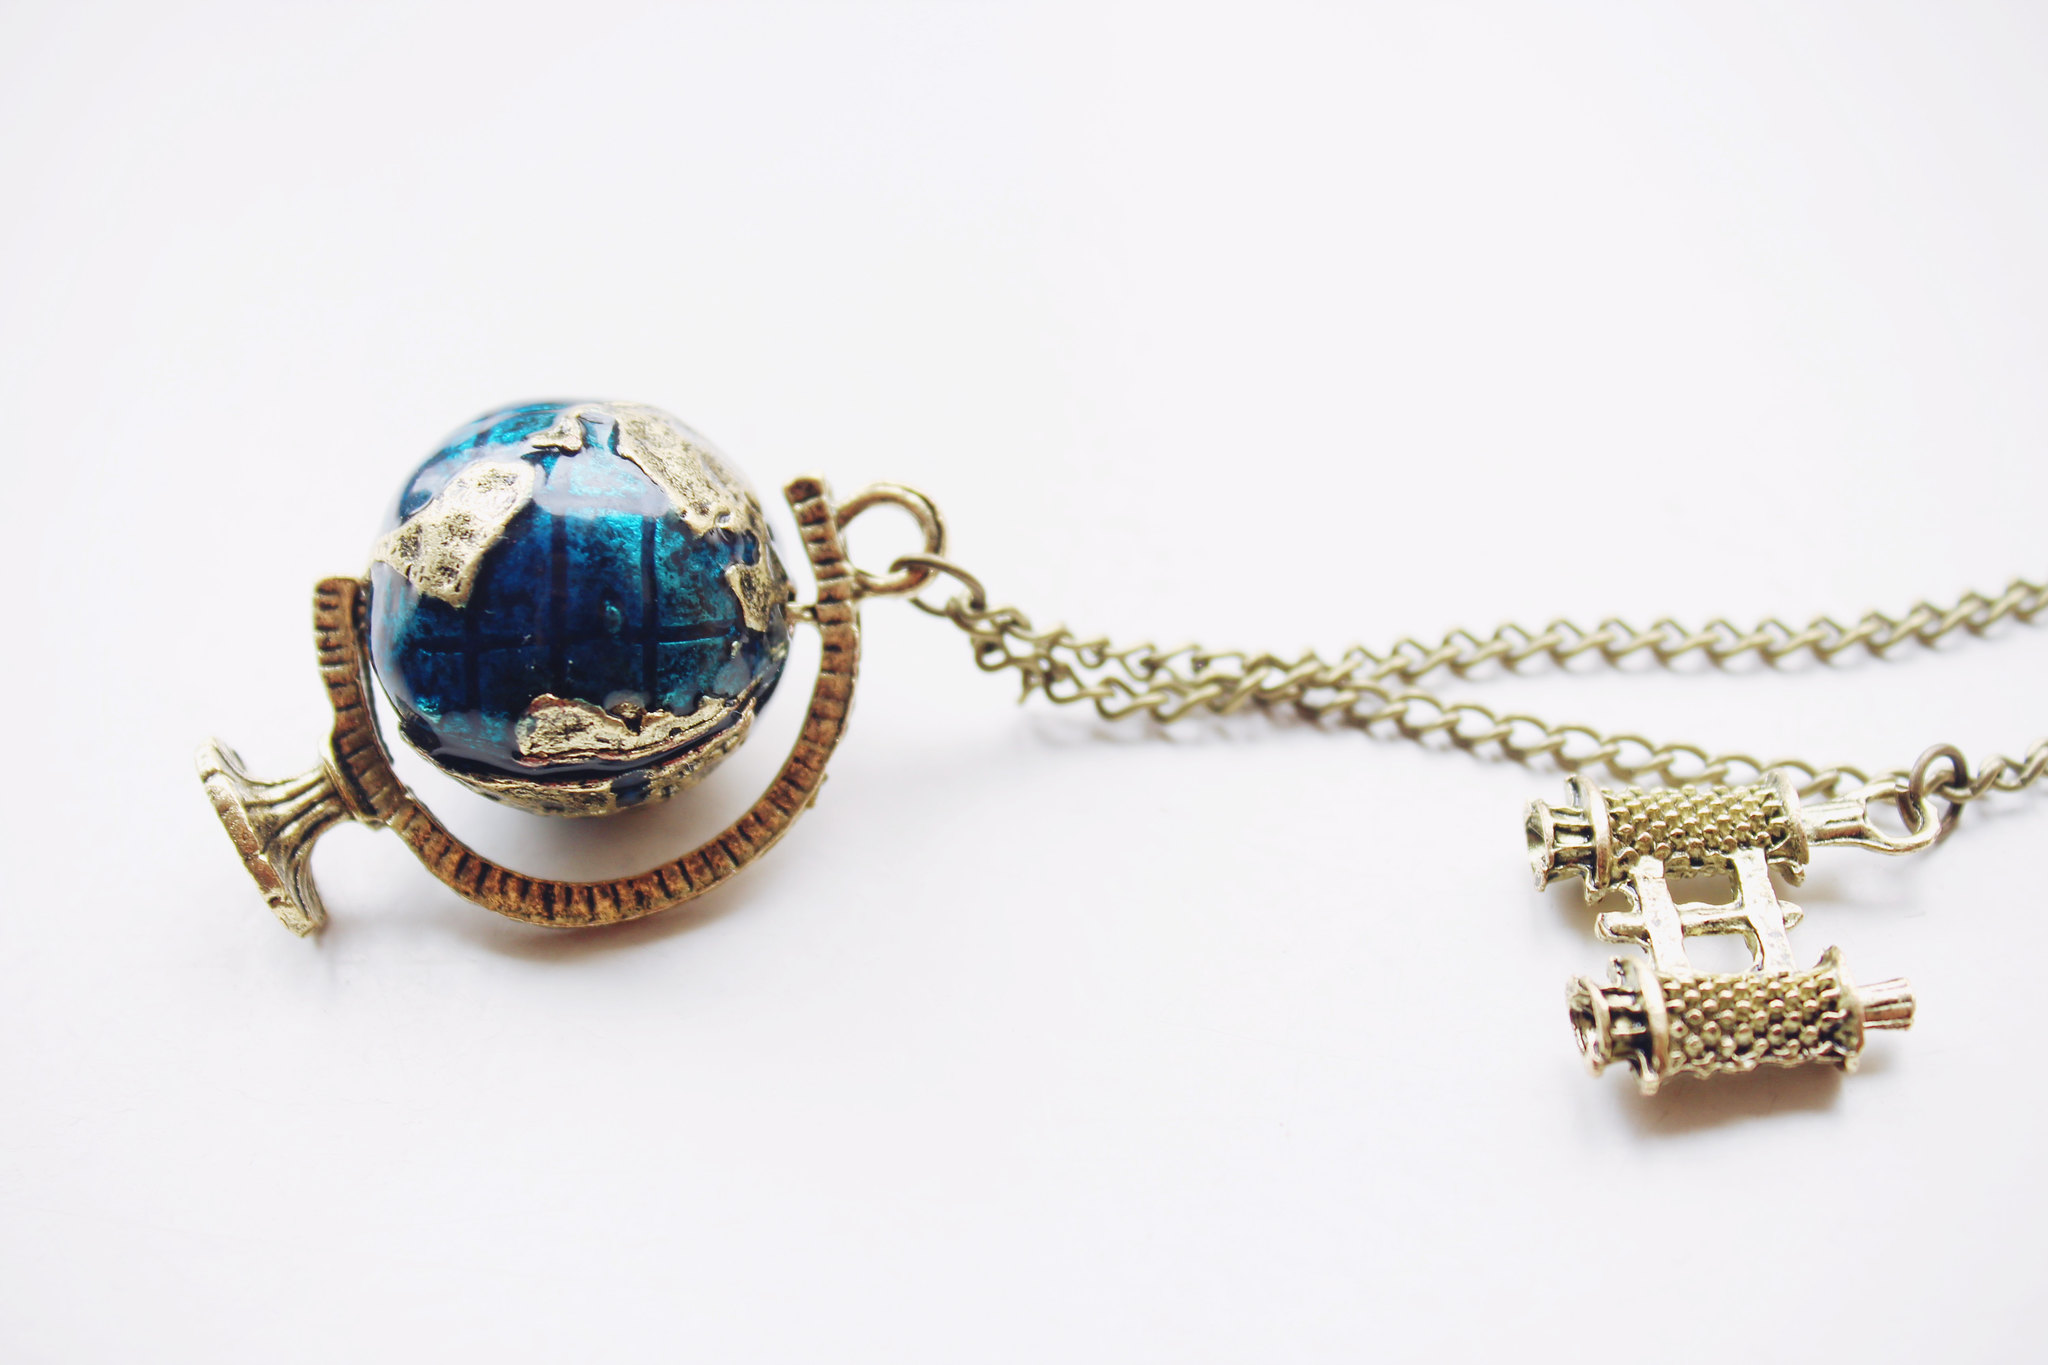 globuss-camera-traveling-necklace-ebay